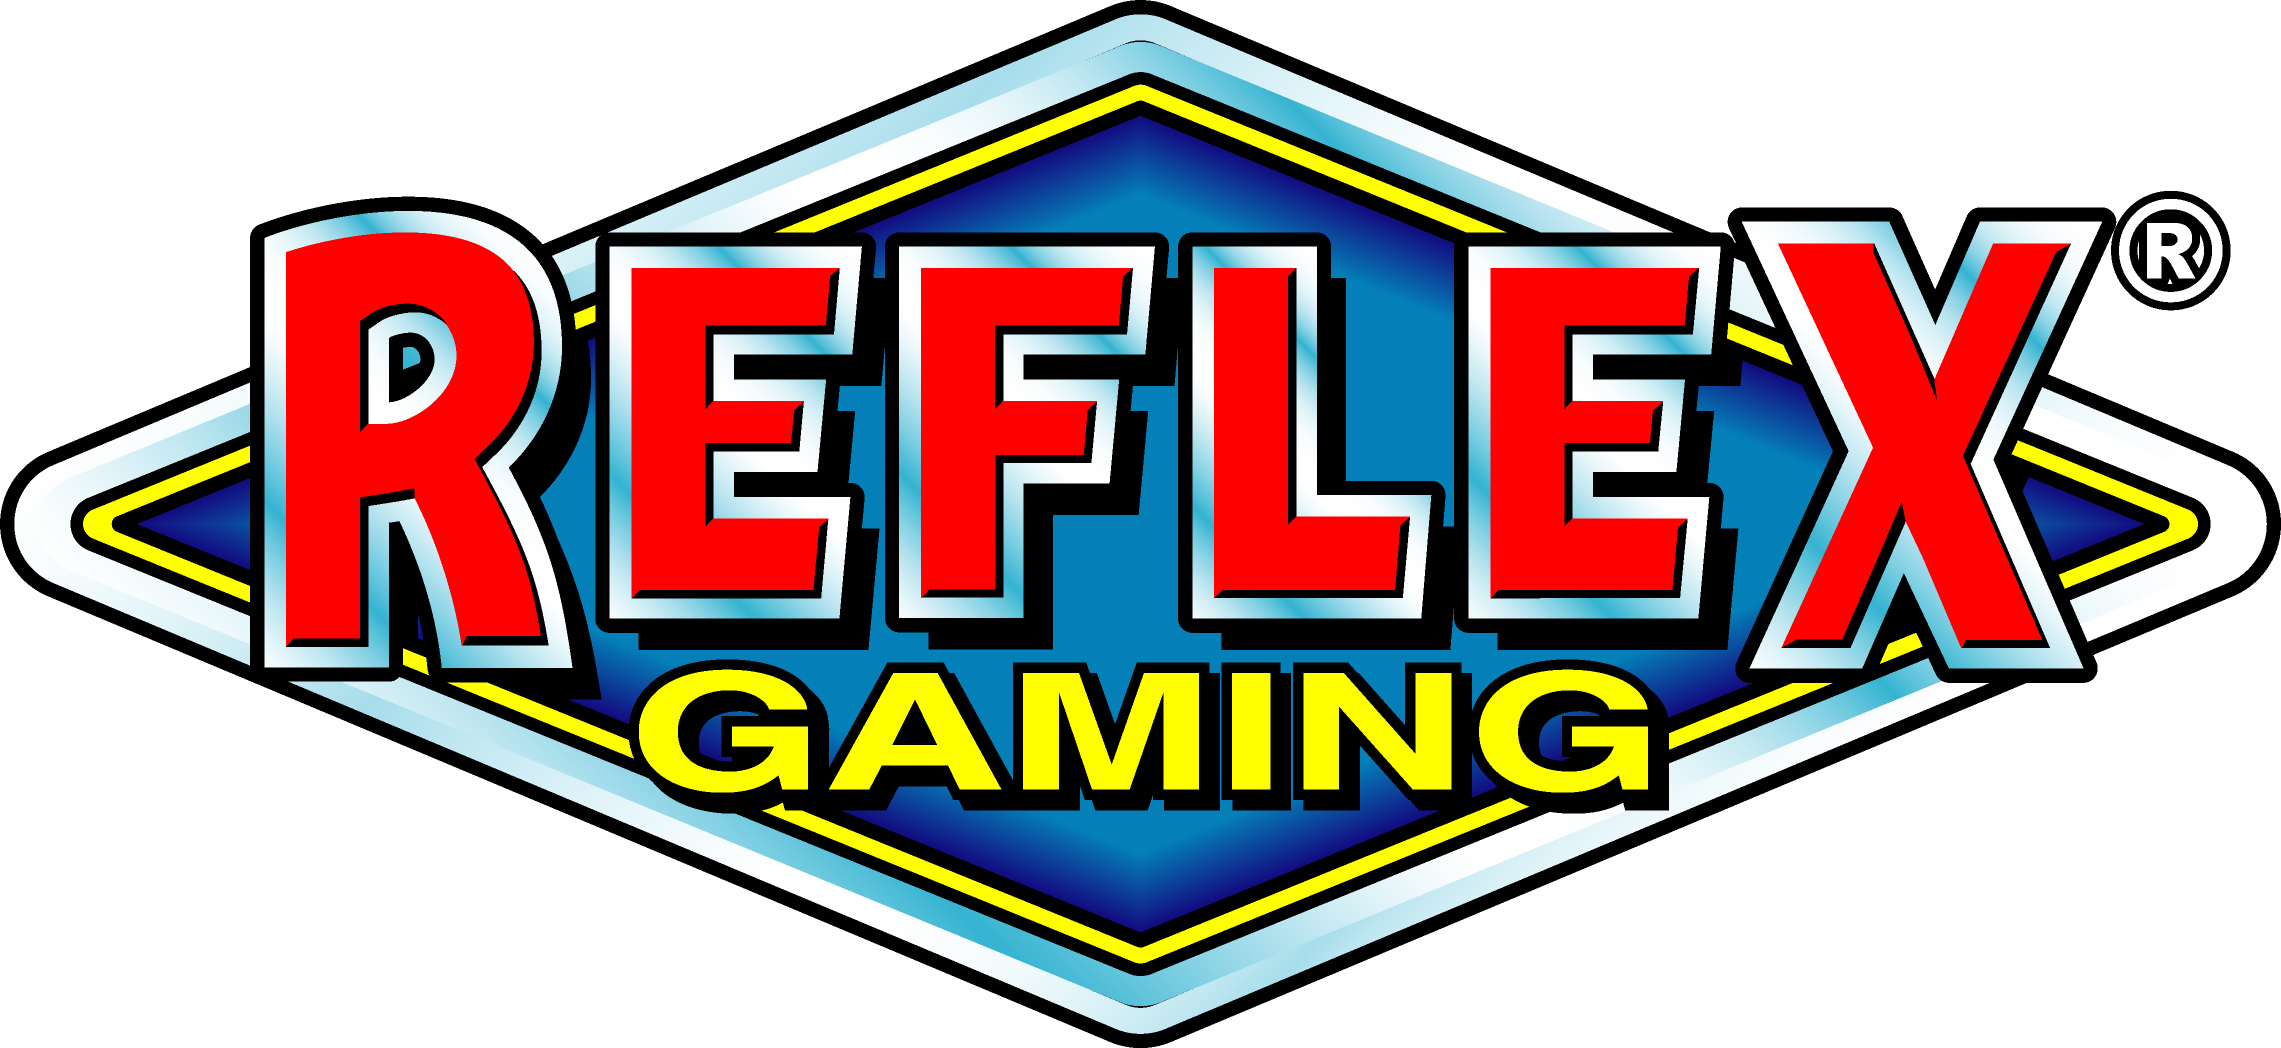 Reflex Gaming ltd. - In-house Software Engineer. Developing video gambling terminals in C++ / DirectX 9.